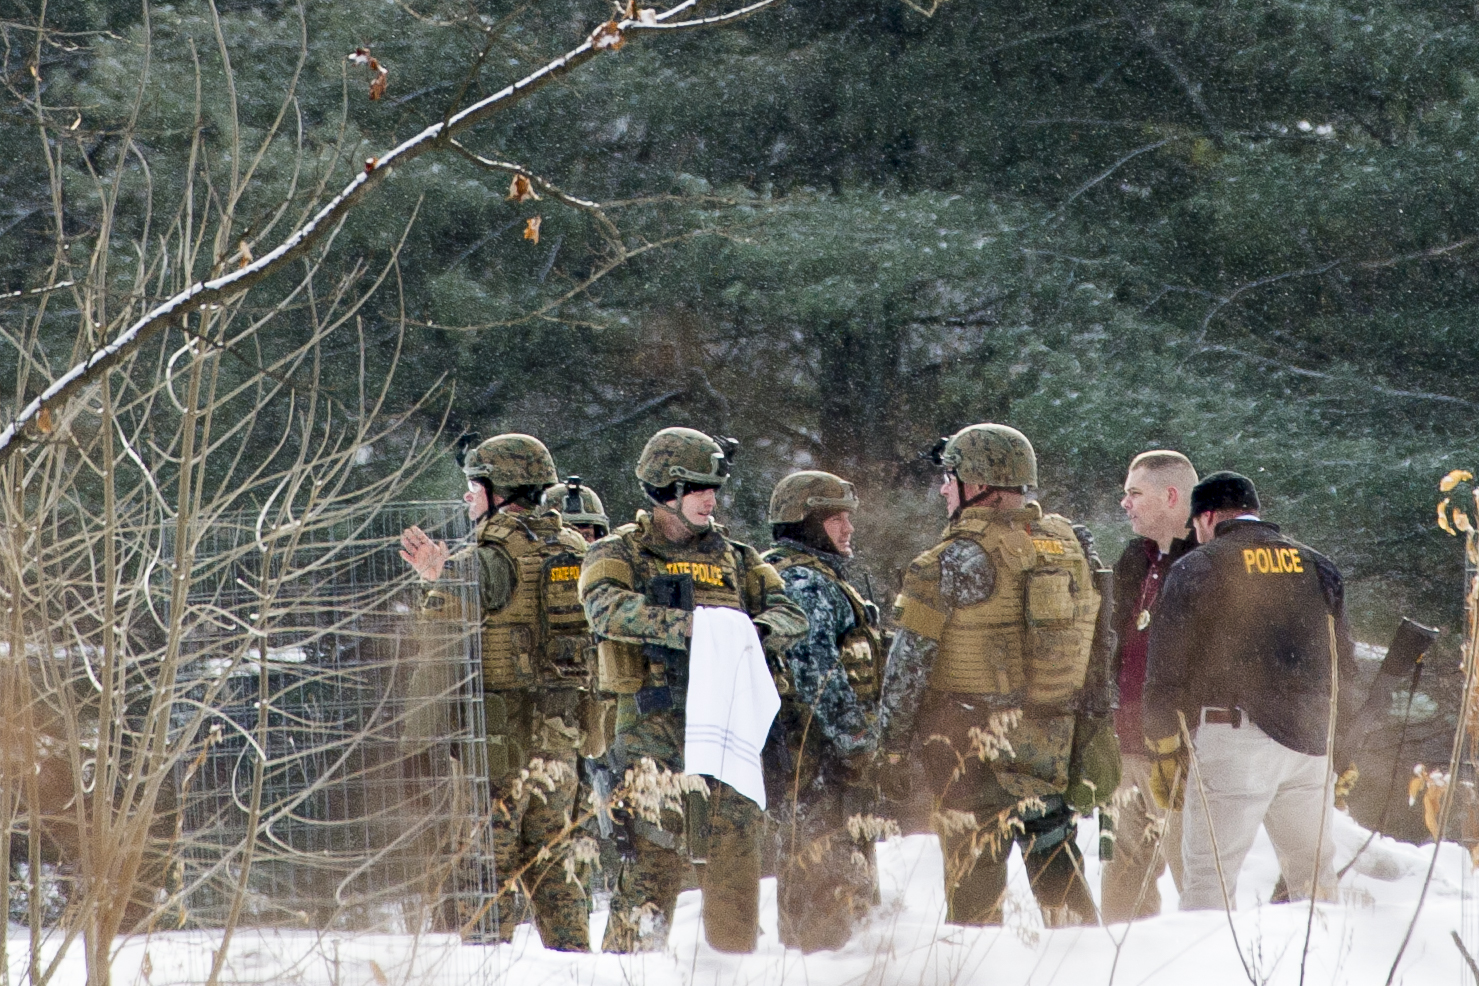 Vermont State Police officers gather after fatally shooting Nathan Giffin on the athletic fields at Montpelier High School on Tuesday, January 16th 2018. Giffin robbed at gunpoint the Vermont State Employees Credit Union adjacent to the school, where he was once a student. After a nearly-hour long standoff, during which Giffin made suicidal statements and threats, eight state troopers and one Montpelier Police officer opened fire, alleging that he moved toward them with the weapon. The weapon turned out to be a BB-gun.